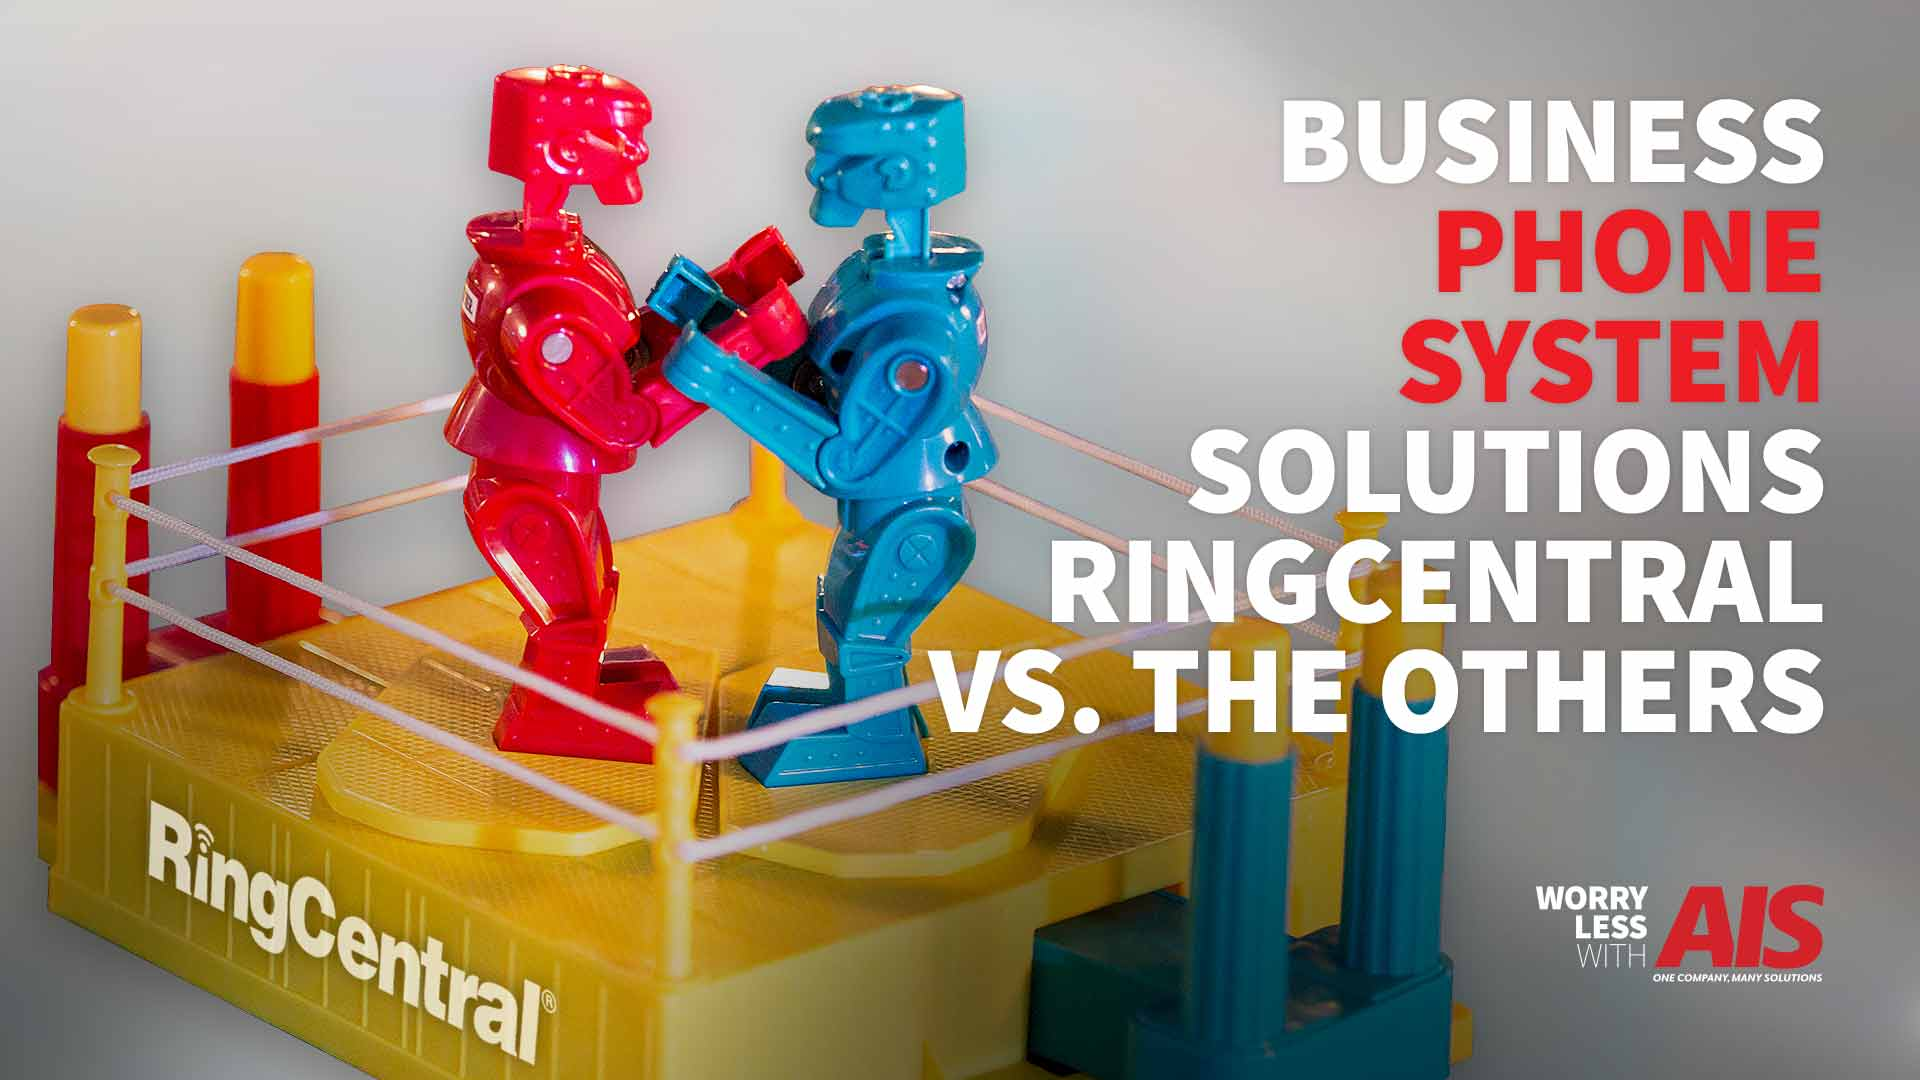 Business Phone System Solutions: RingCentral vs. All Others